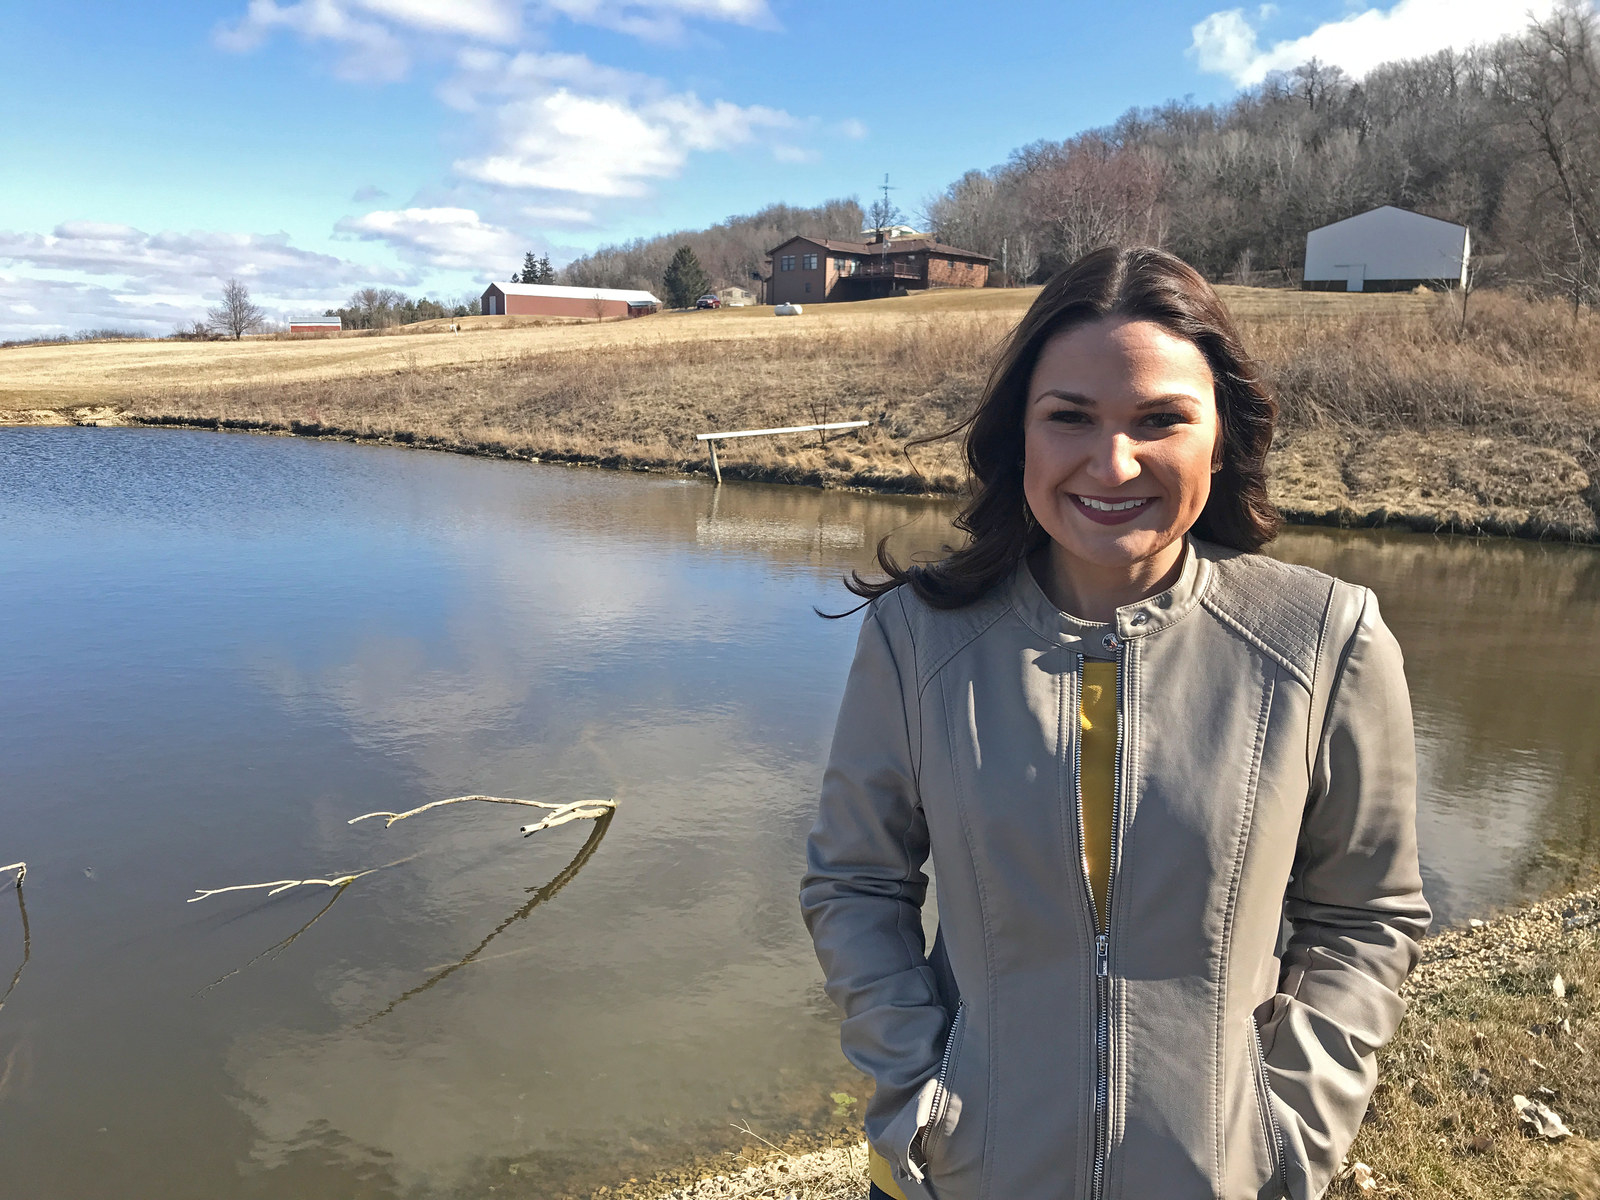 Abby Finkenauer is pictured on the grounds of the house in which she grew up in Sherril, Iowa, March 31, 2018.